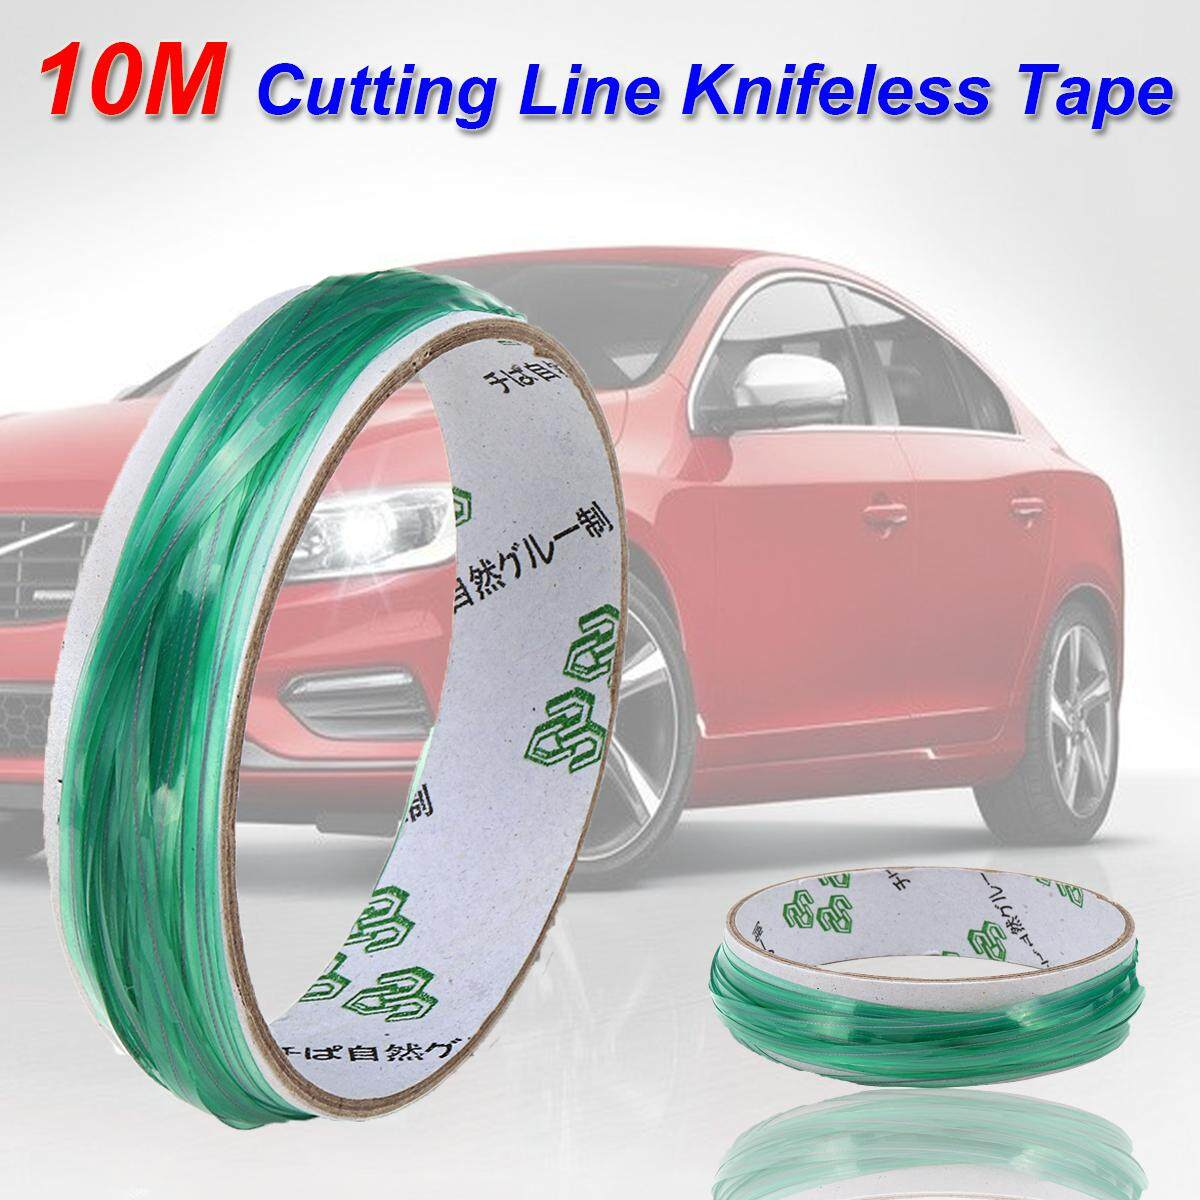 10m Cutting Line Kni Feless Tape Trim Tool Finish Pinstripe For Car Film Sticker By Audew.